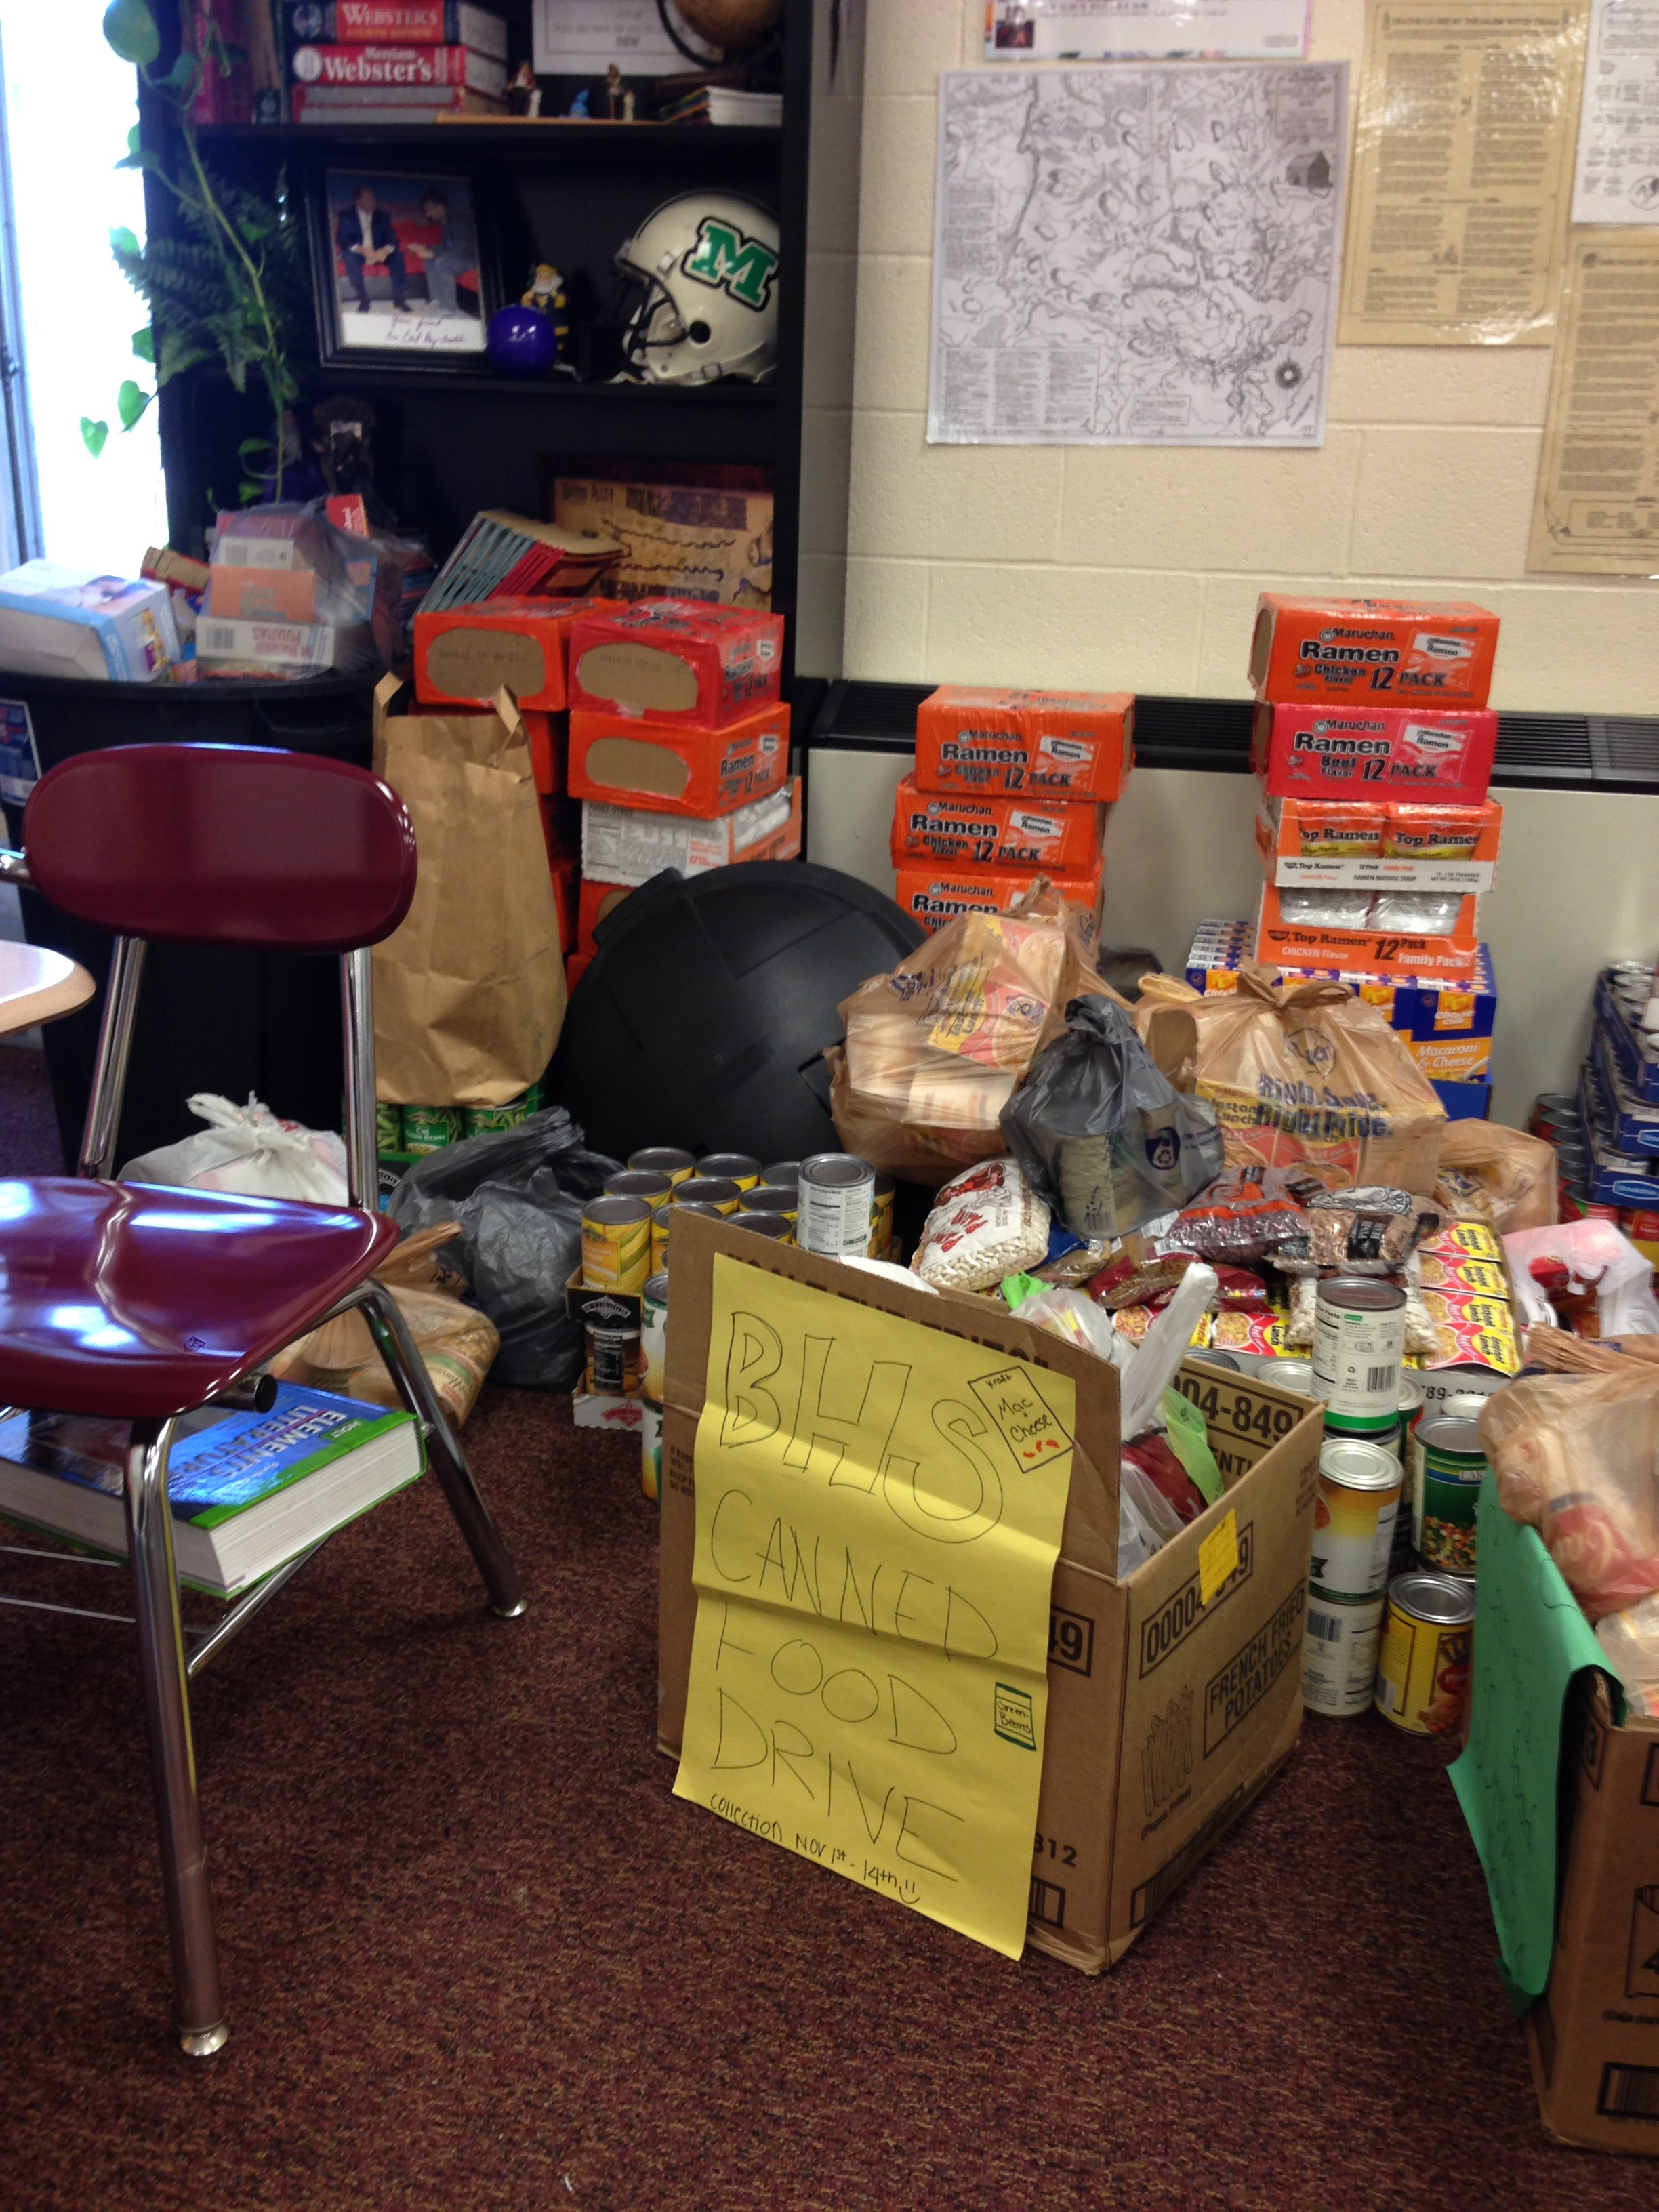 SOME OF THE WORK WE DID TO COLLECT CANS FOR OUR HOMEROOM